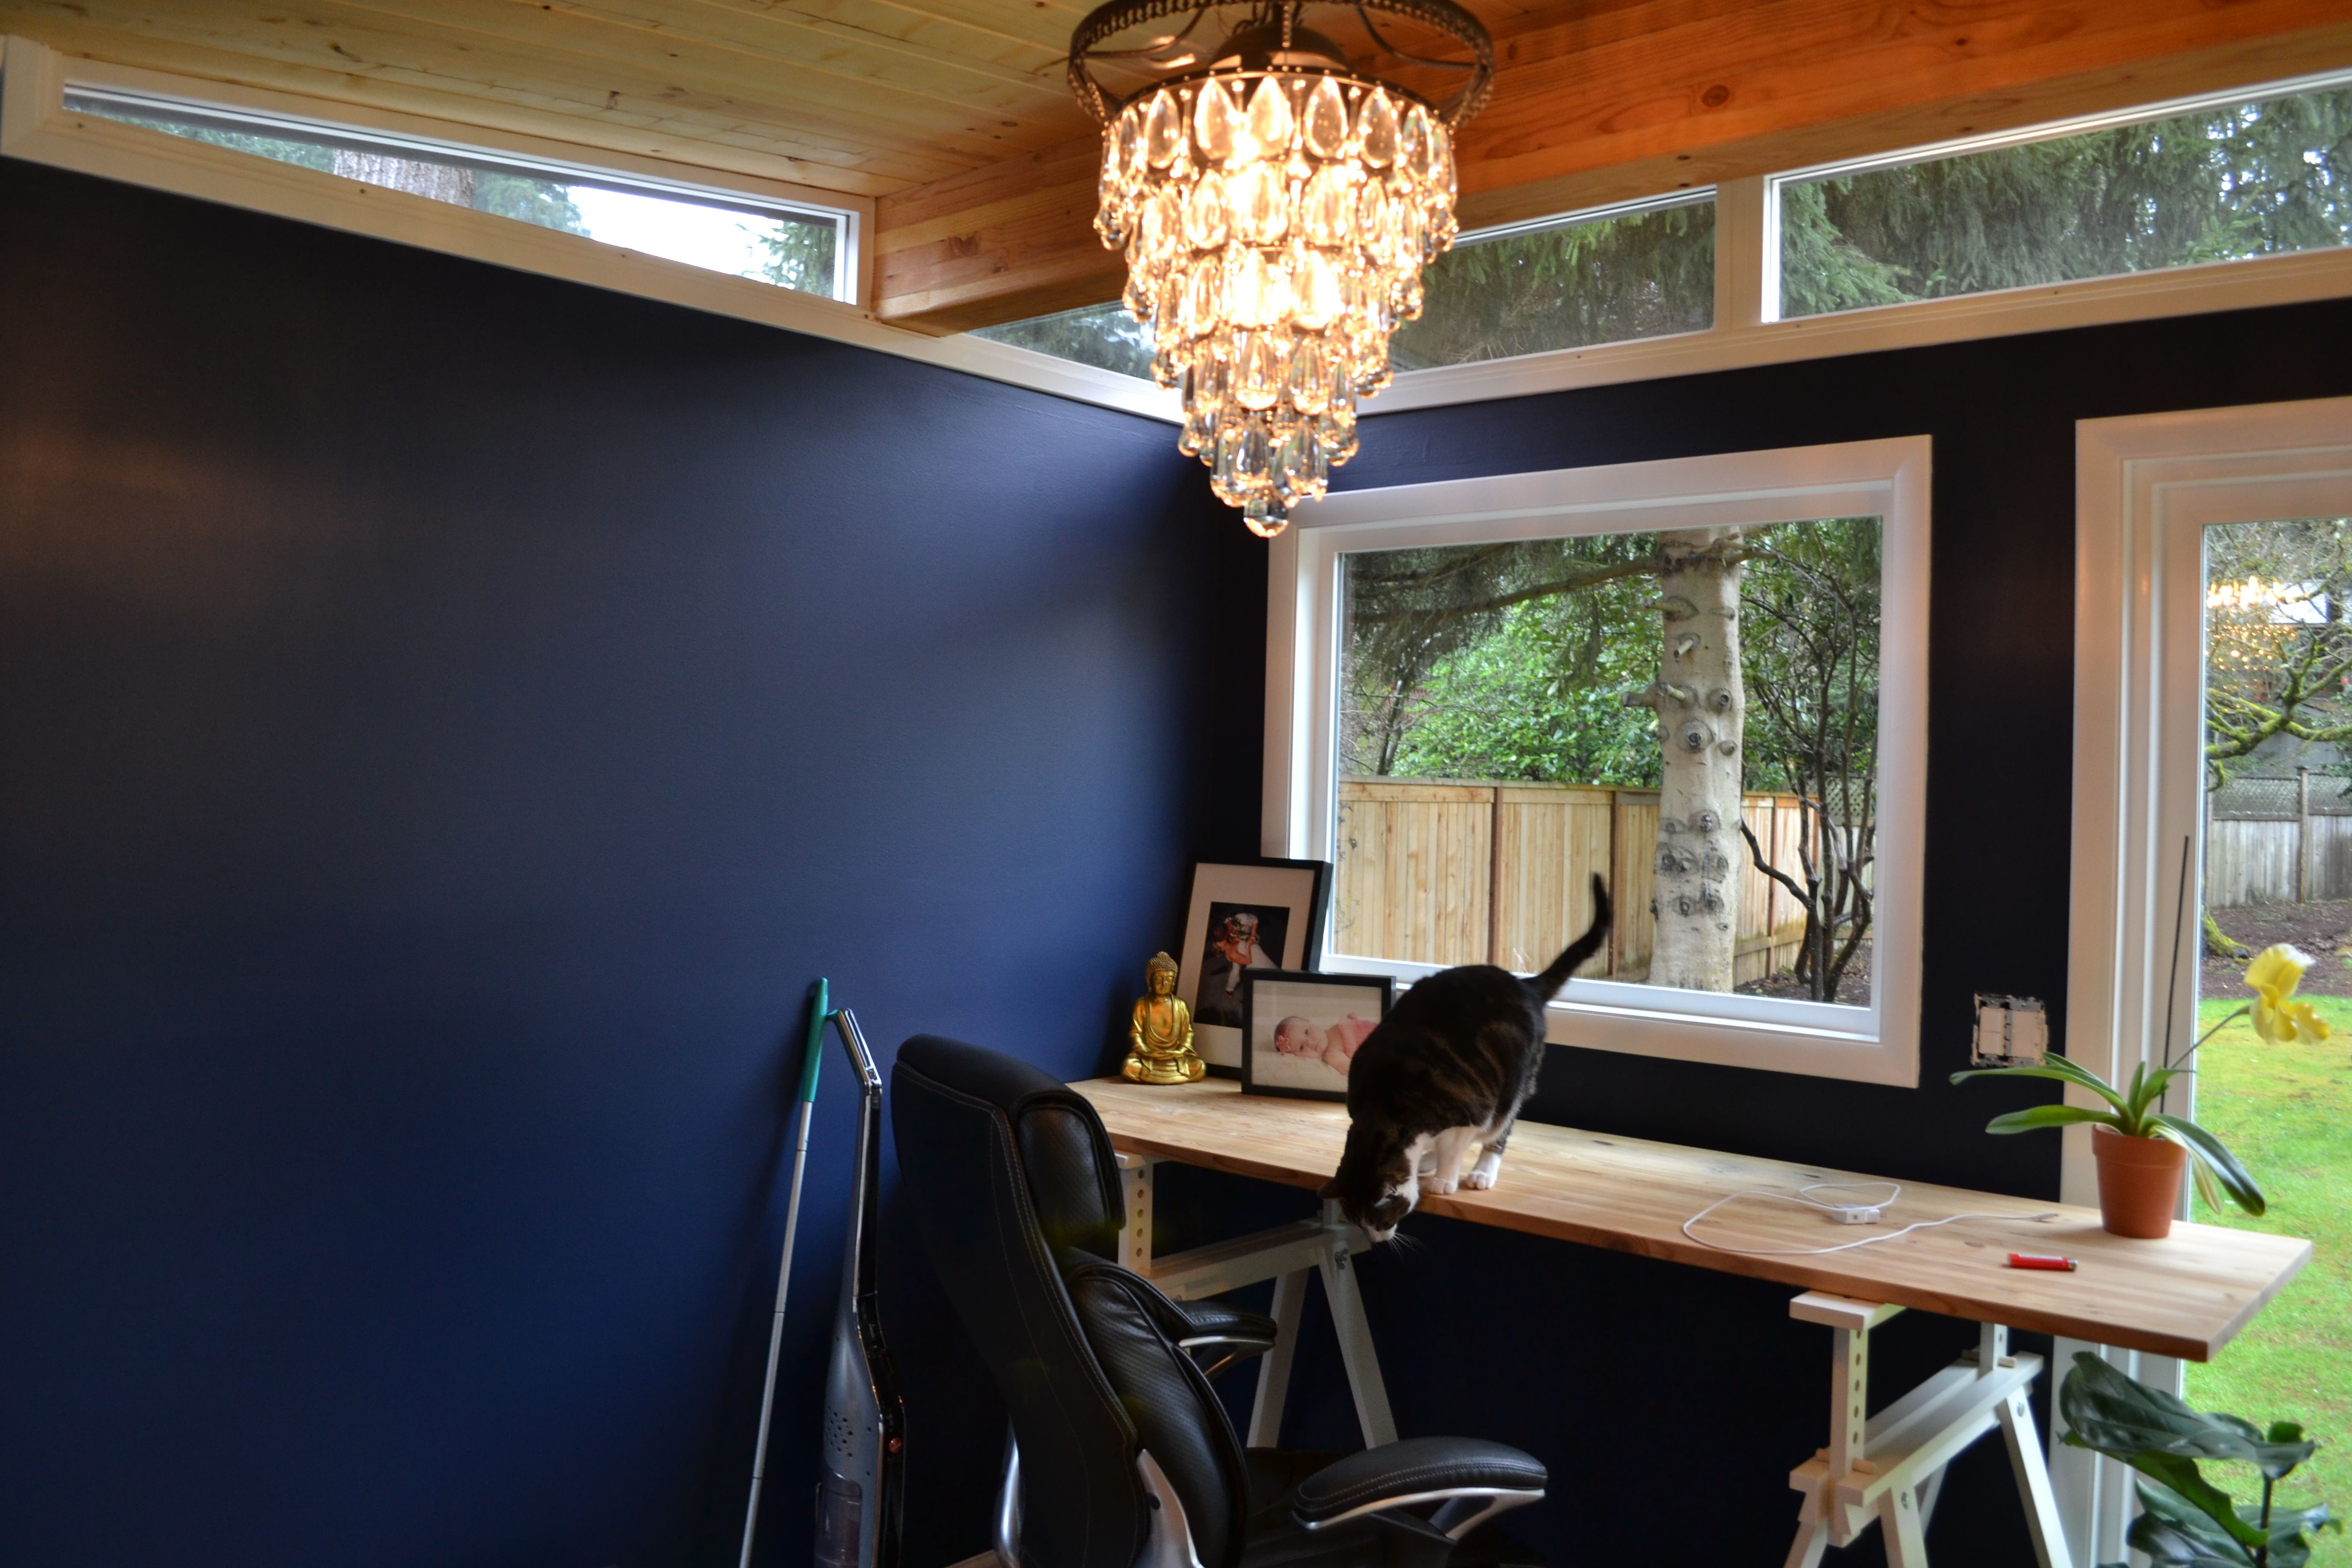 What better way to work from home than with a ModernShed home